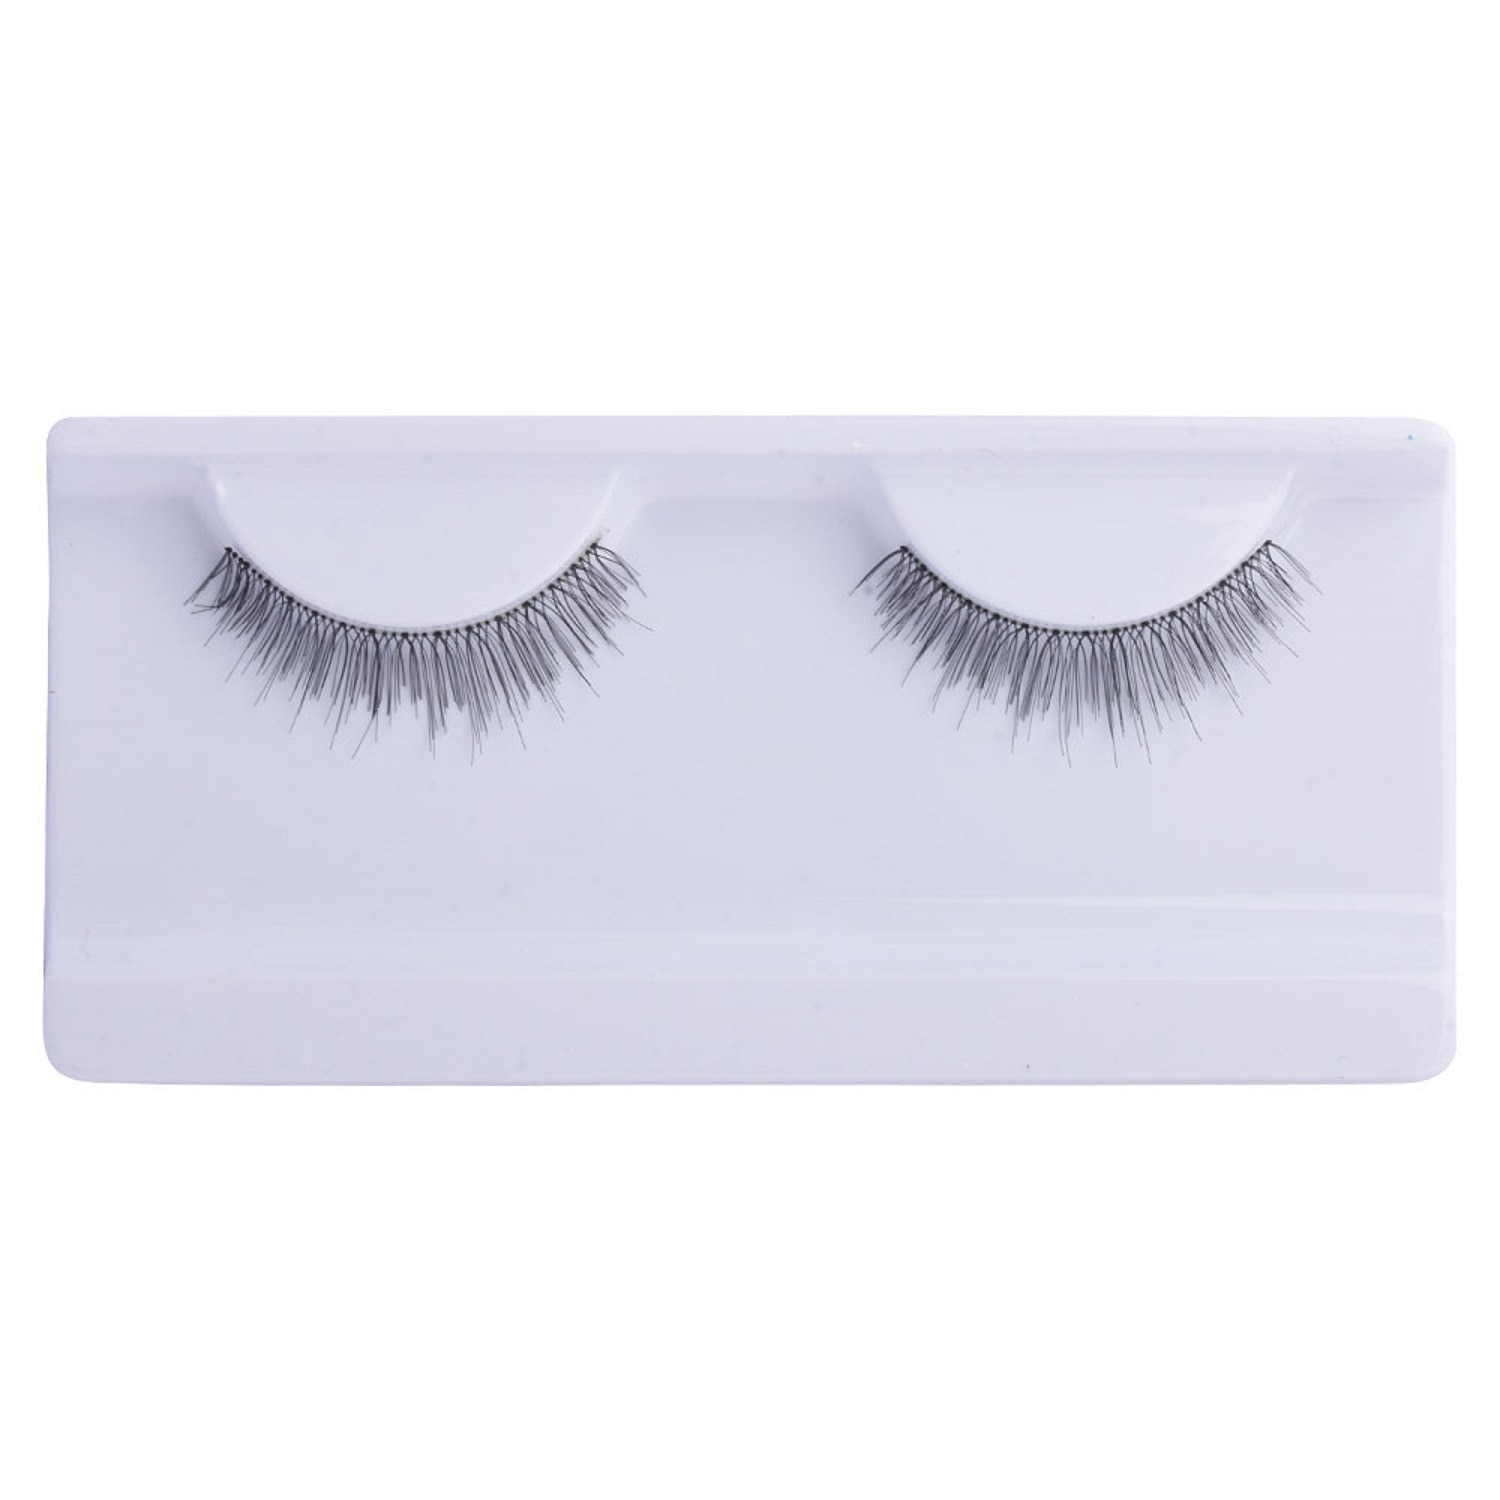 CHIC BOBBIEBeauty Tools - Diva Lashes Edition - Queen,Make Up Sets/ KitsWATSONS EMP. DISC.